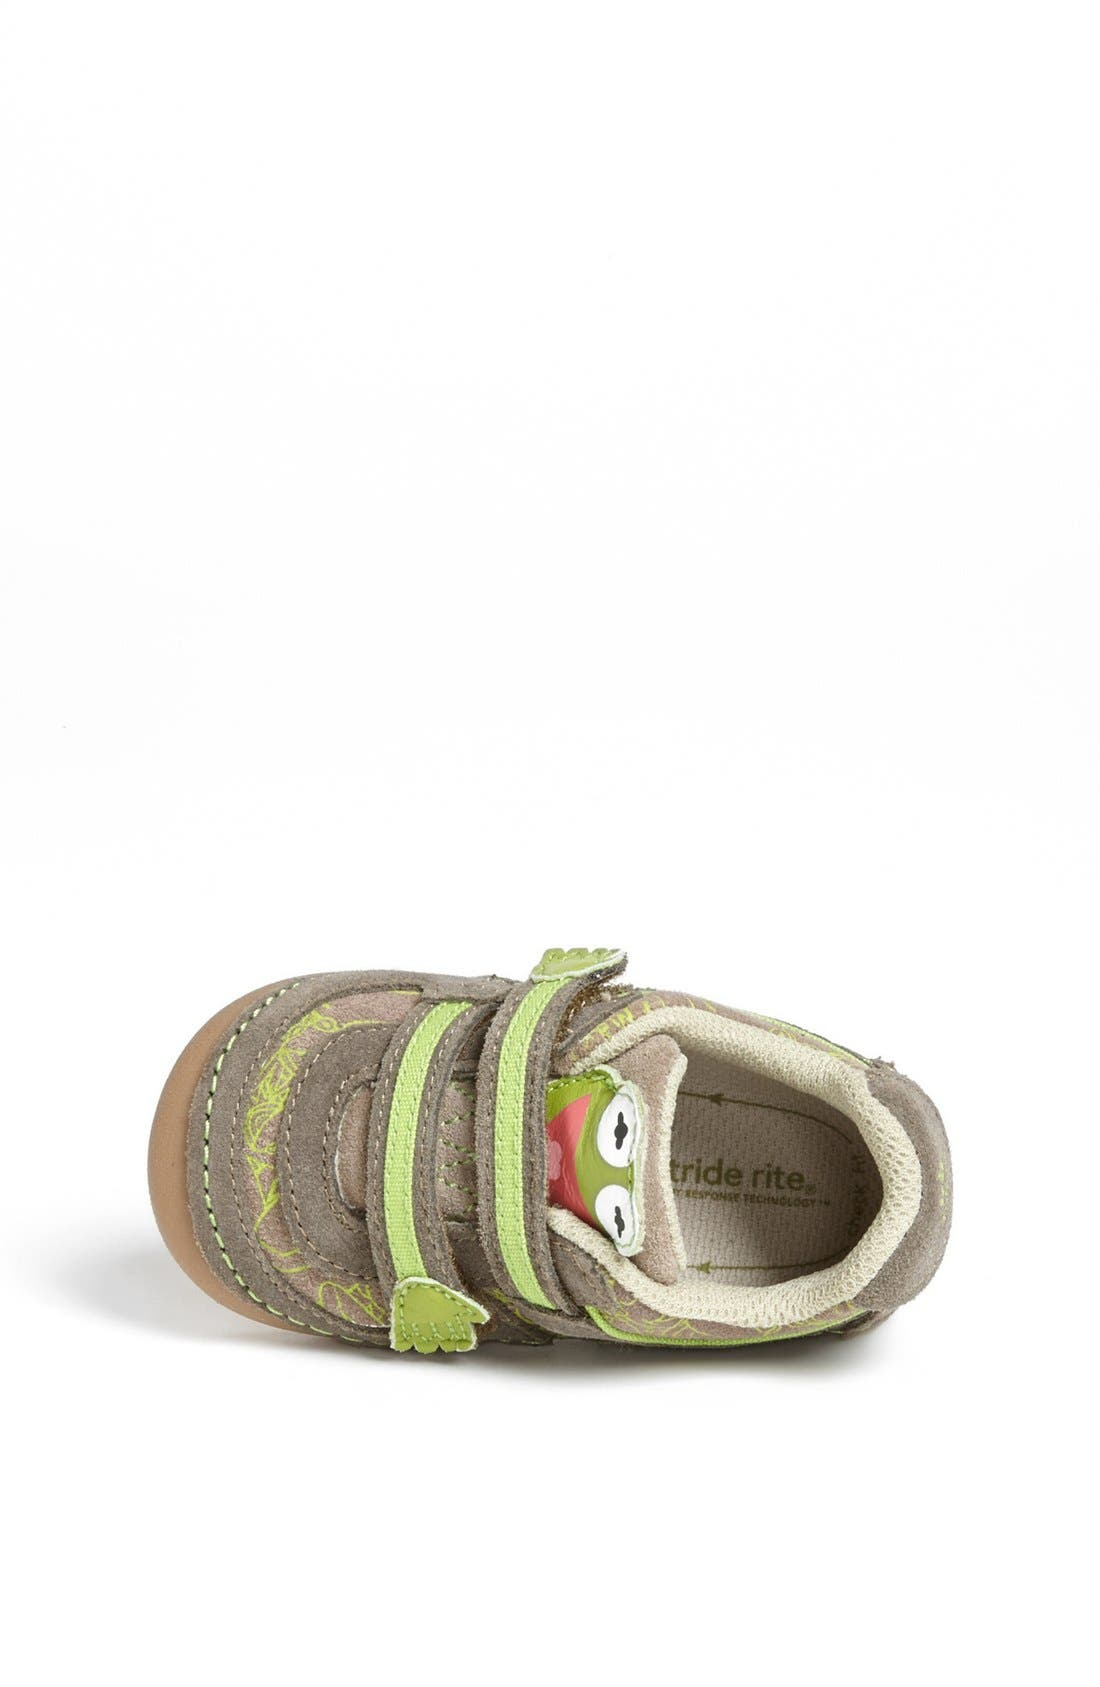 Alternate Image 3  - Stride Rite 'Kermit' Sneaker (Baby & Walker)